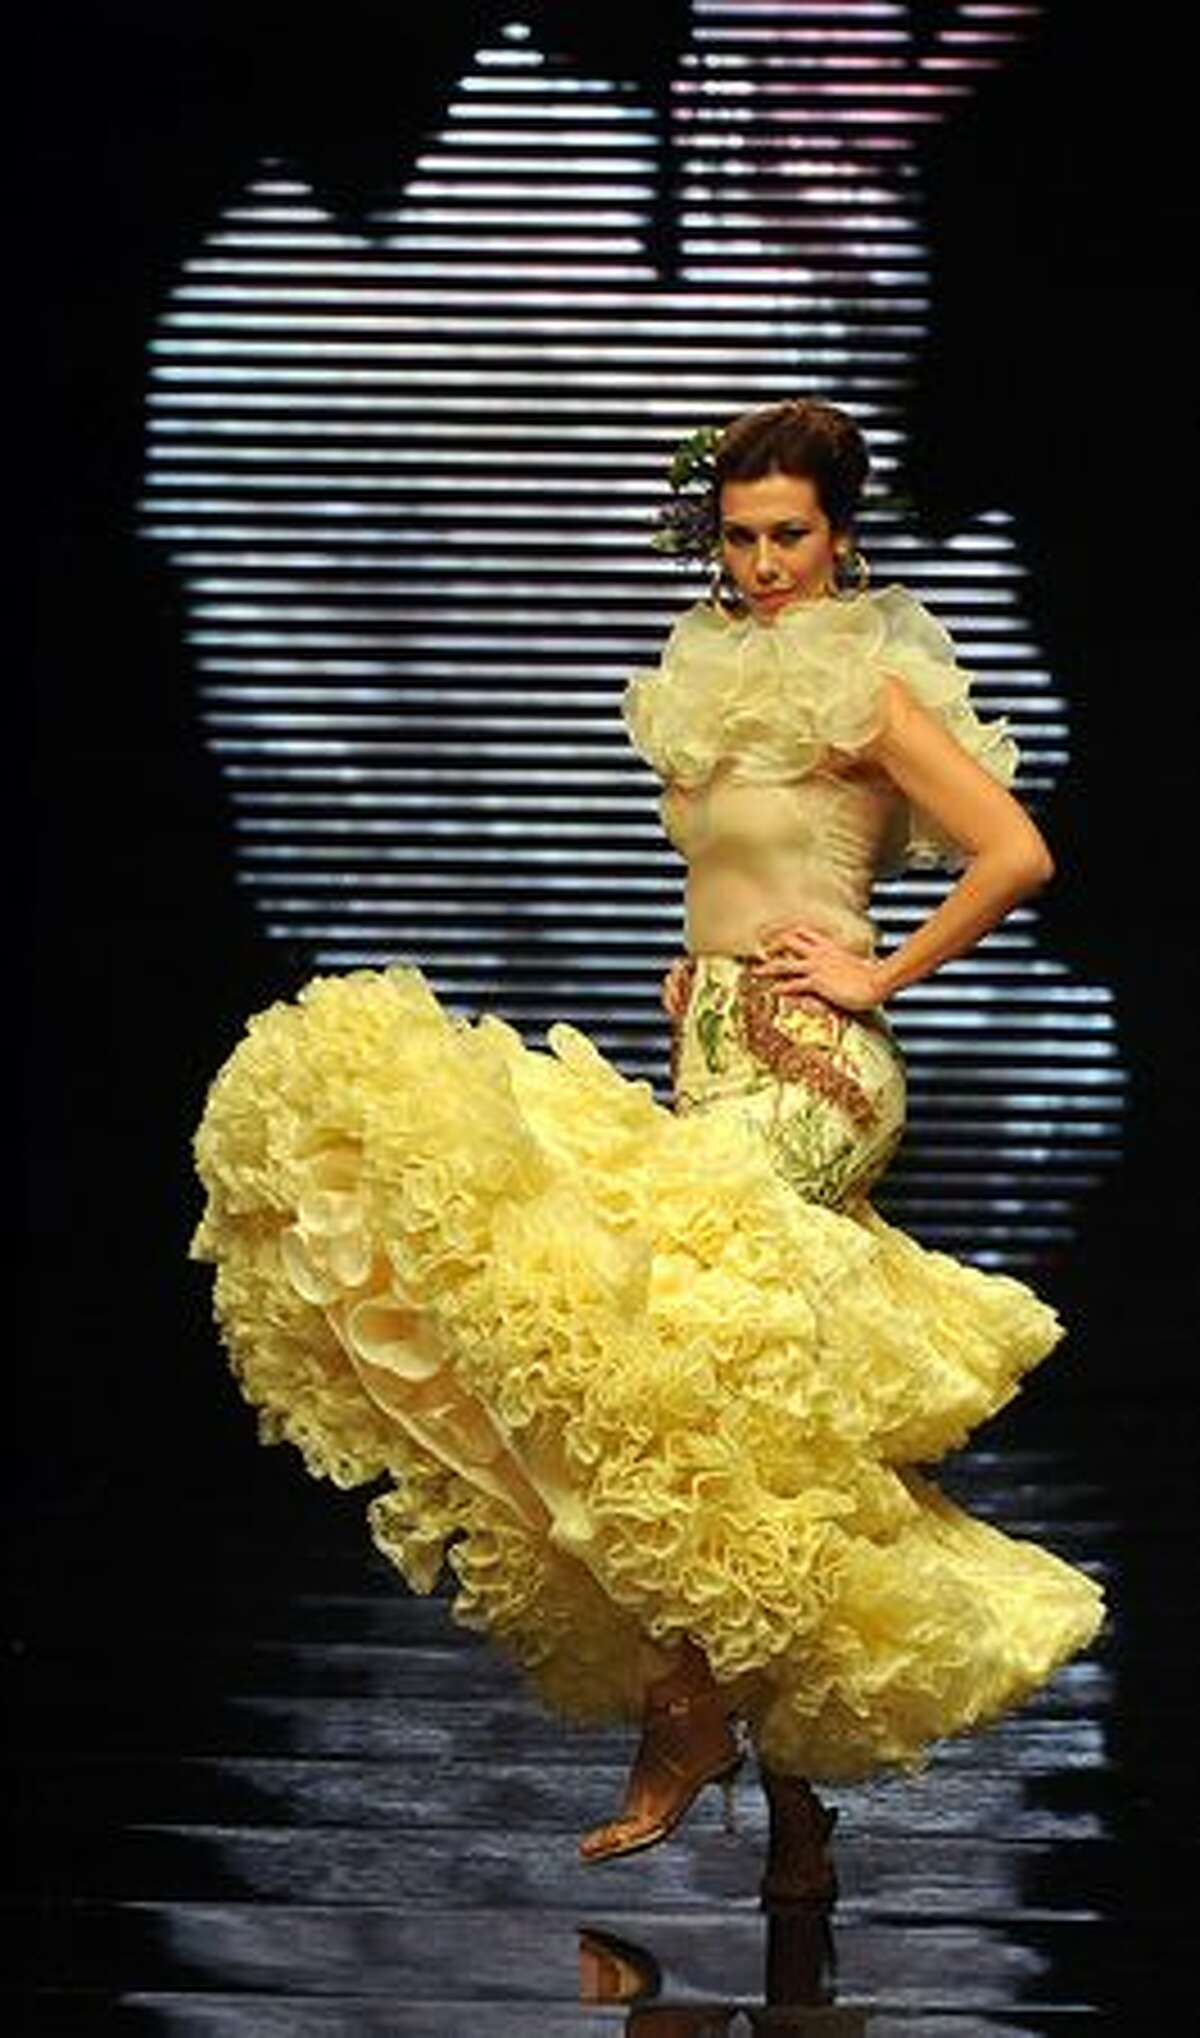 A model presents a creation by Spanish designer Curro Duran during the SIMOF 2011 (International Flamenco Fashion Exhibition) in Sevilla.